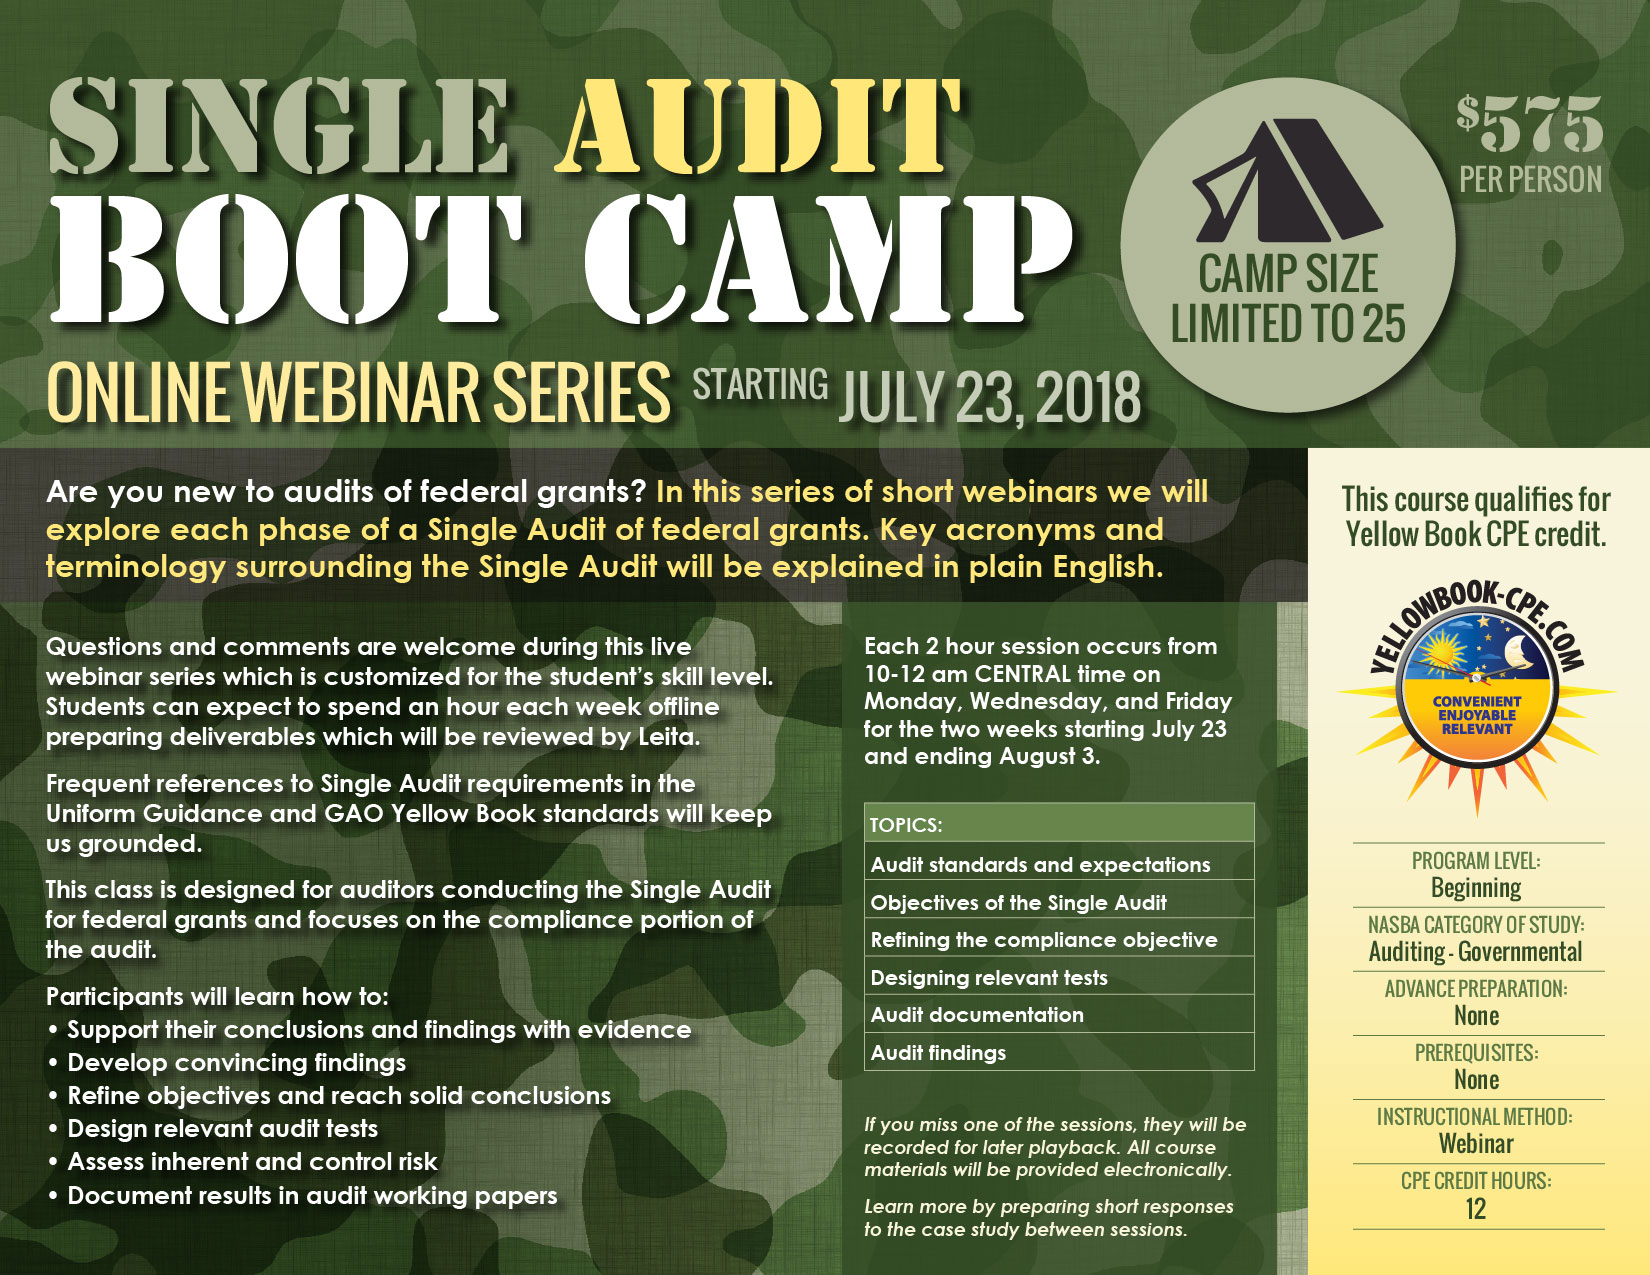 Single Audit Boot Camp